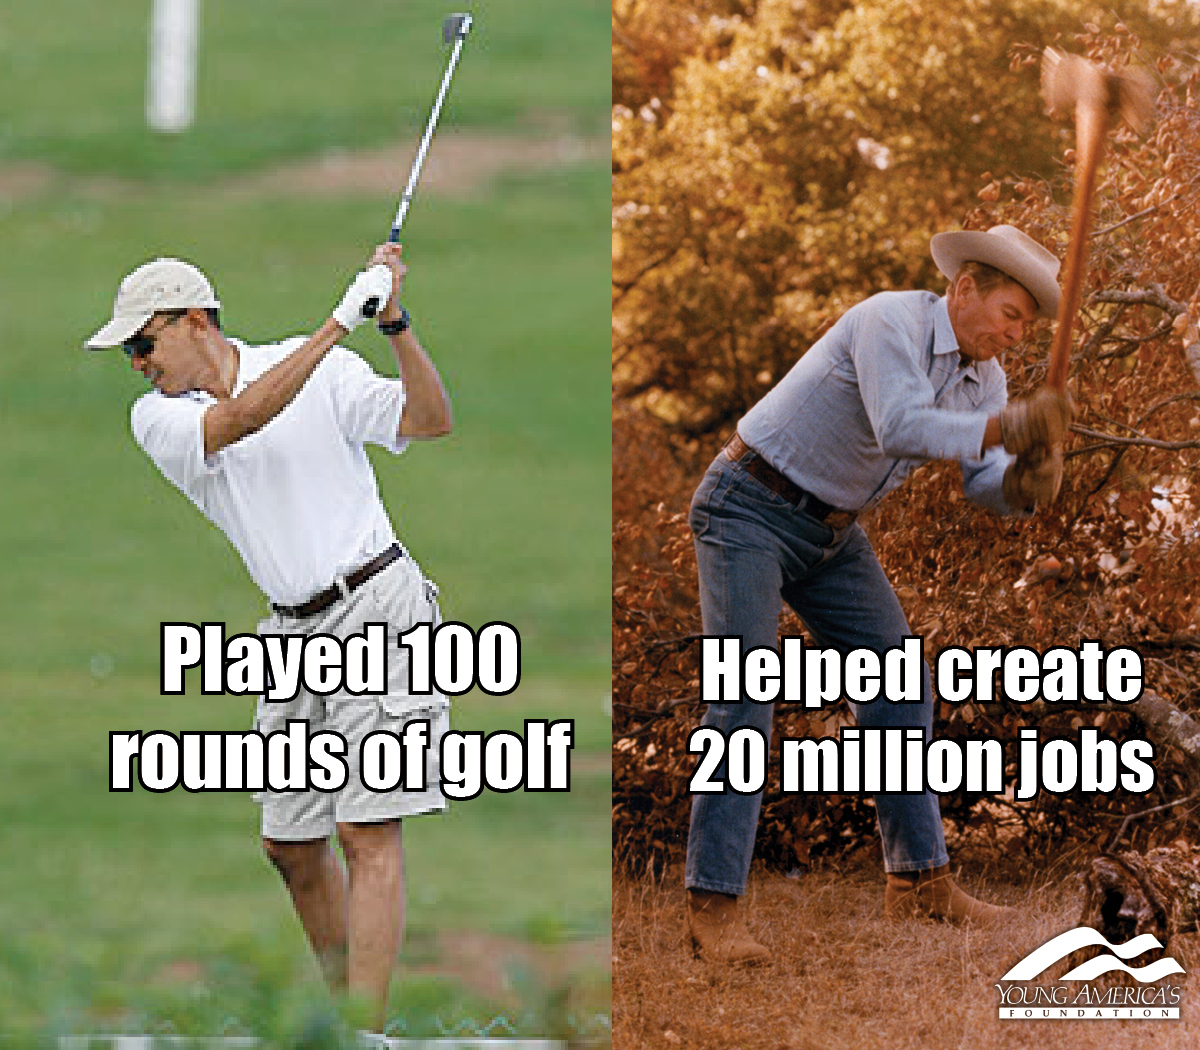 hilarious Obama golf pic pics picture pictures image images President funny political humor humorous satire satirical hysterical awesome lol lolz meme memes golfing golf course hole holes club golf clubs swing 200 rounds 200th round Obama Meme Obama Played 100 Rounds of Golf, Reagan Helped Create 20 Million Jobs